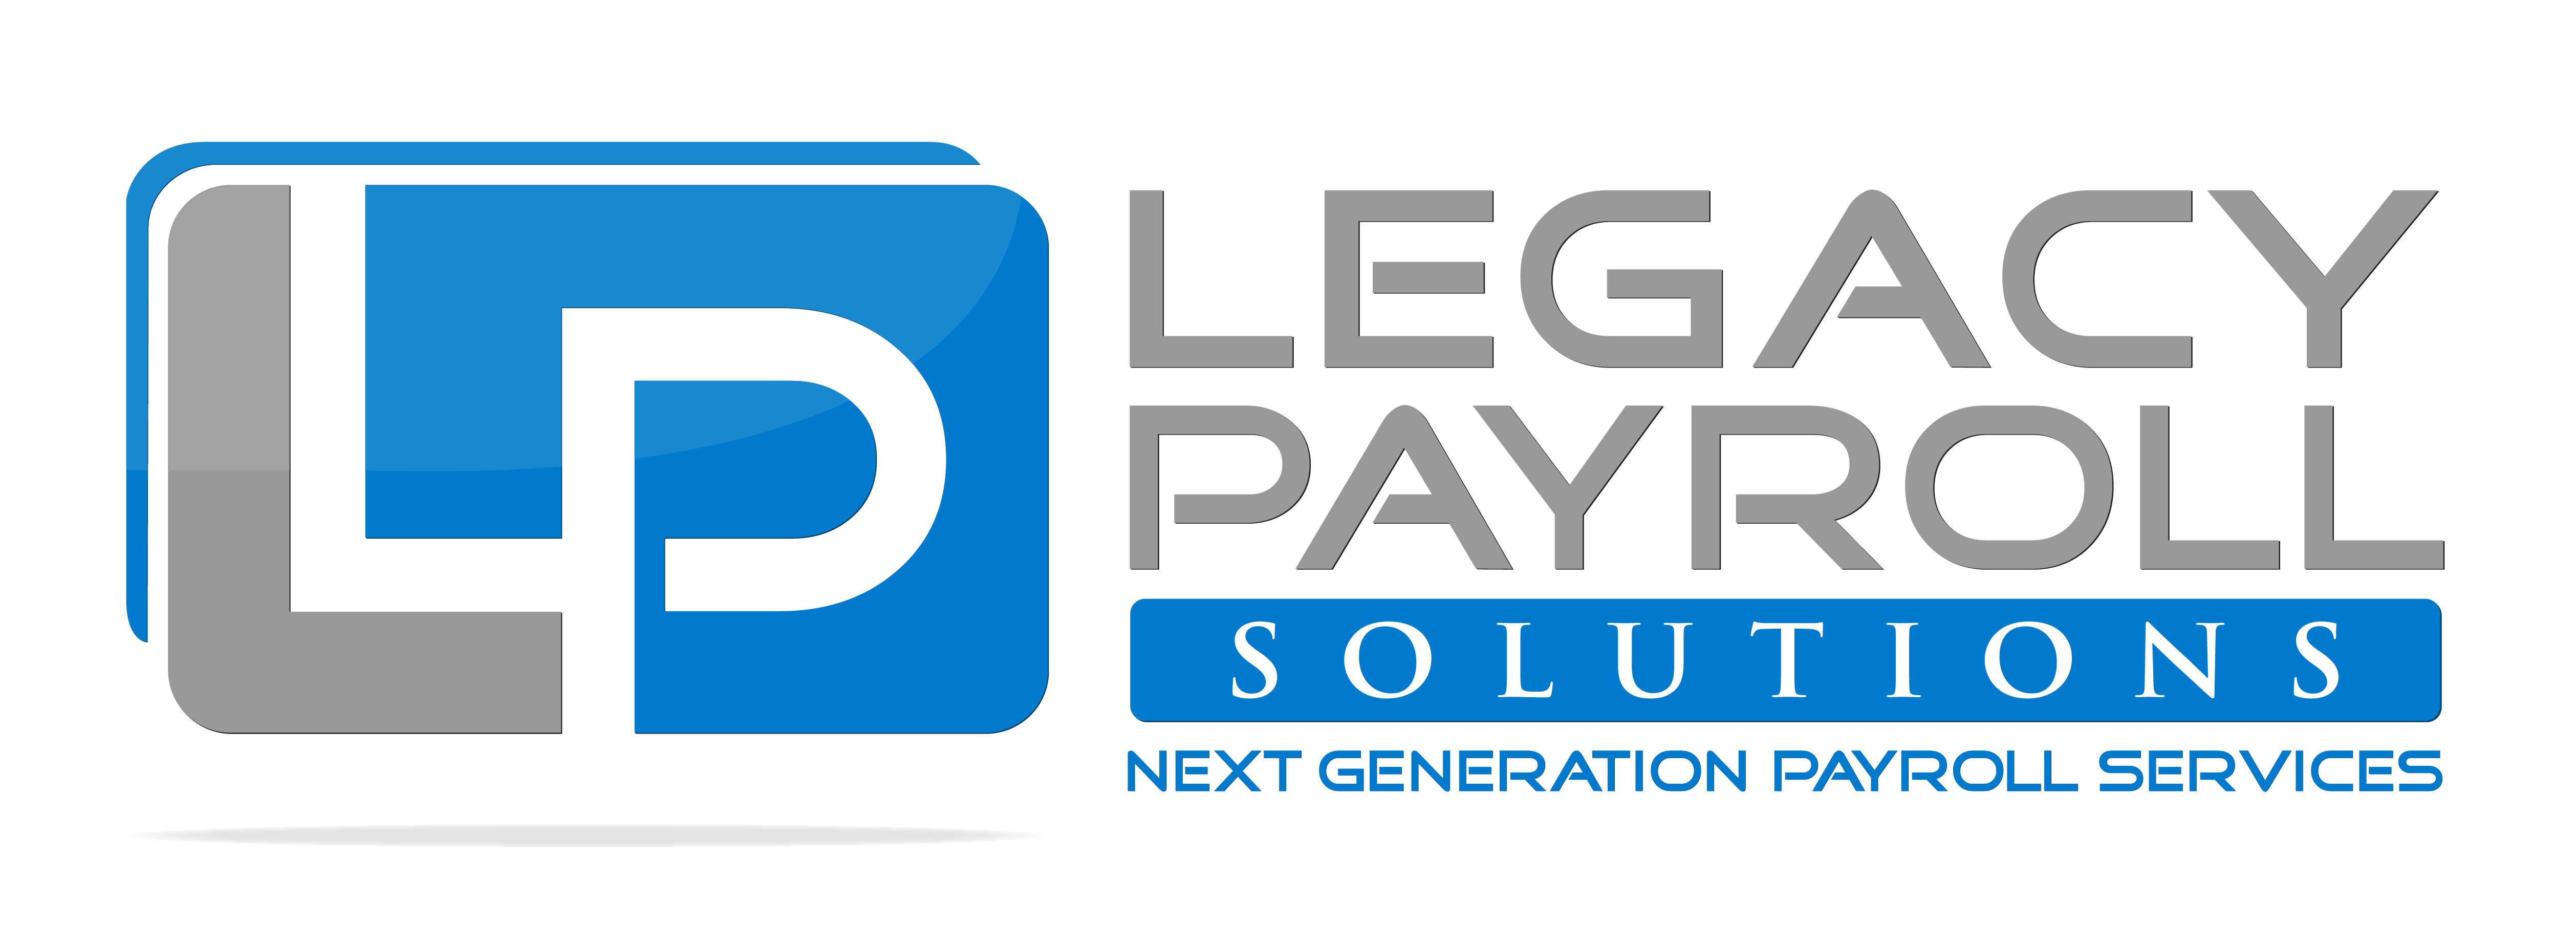 Legacy Payroll Solutions Logo